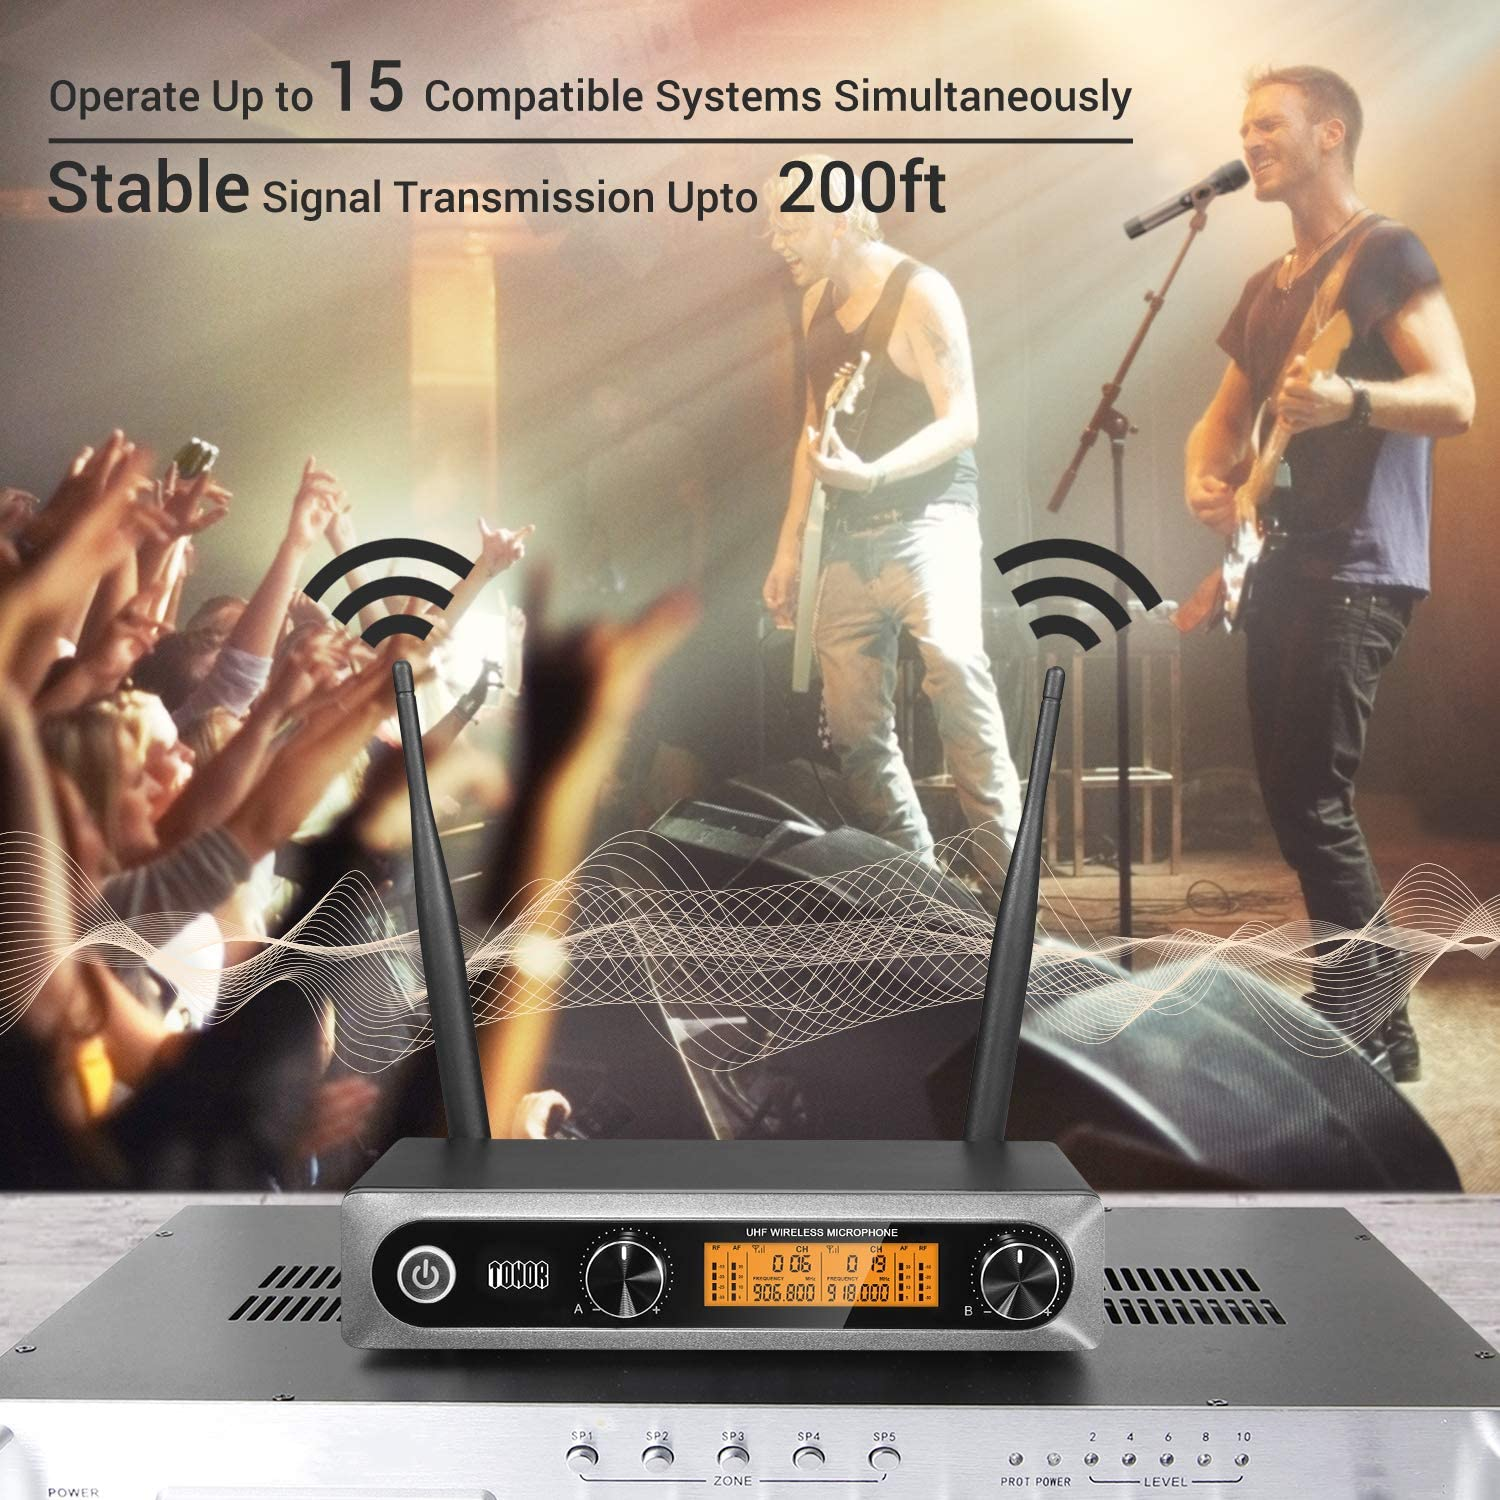 TONOR Wireless Microphone,Metal Dual Professional UHF Cordless Dynamic Mic Handheld Microphone System for Home Karaoke, Meeting, Party, Church, DJ, Wedding, Home KTV Set, 200ft(TW-820): Musical Instruments